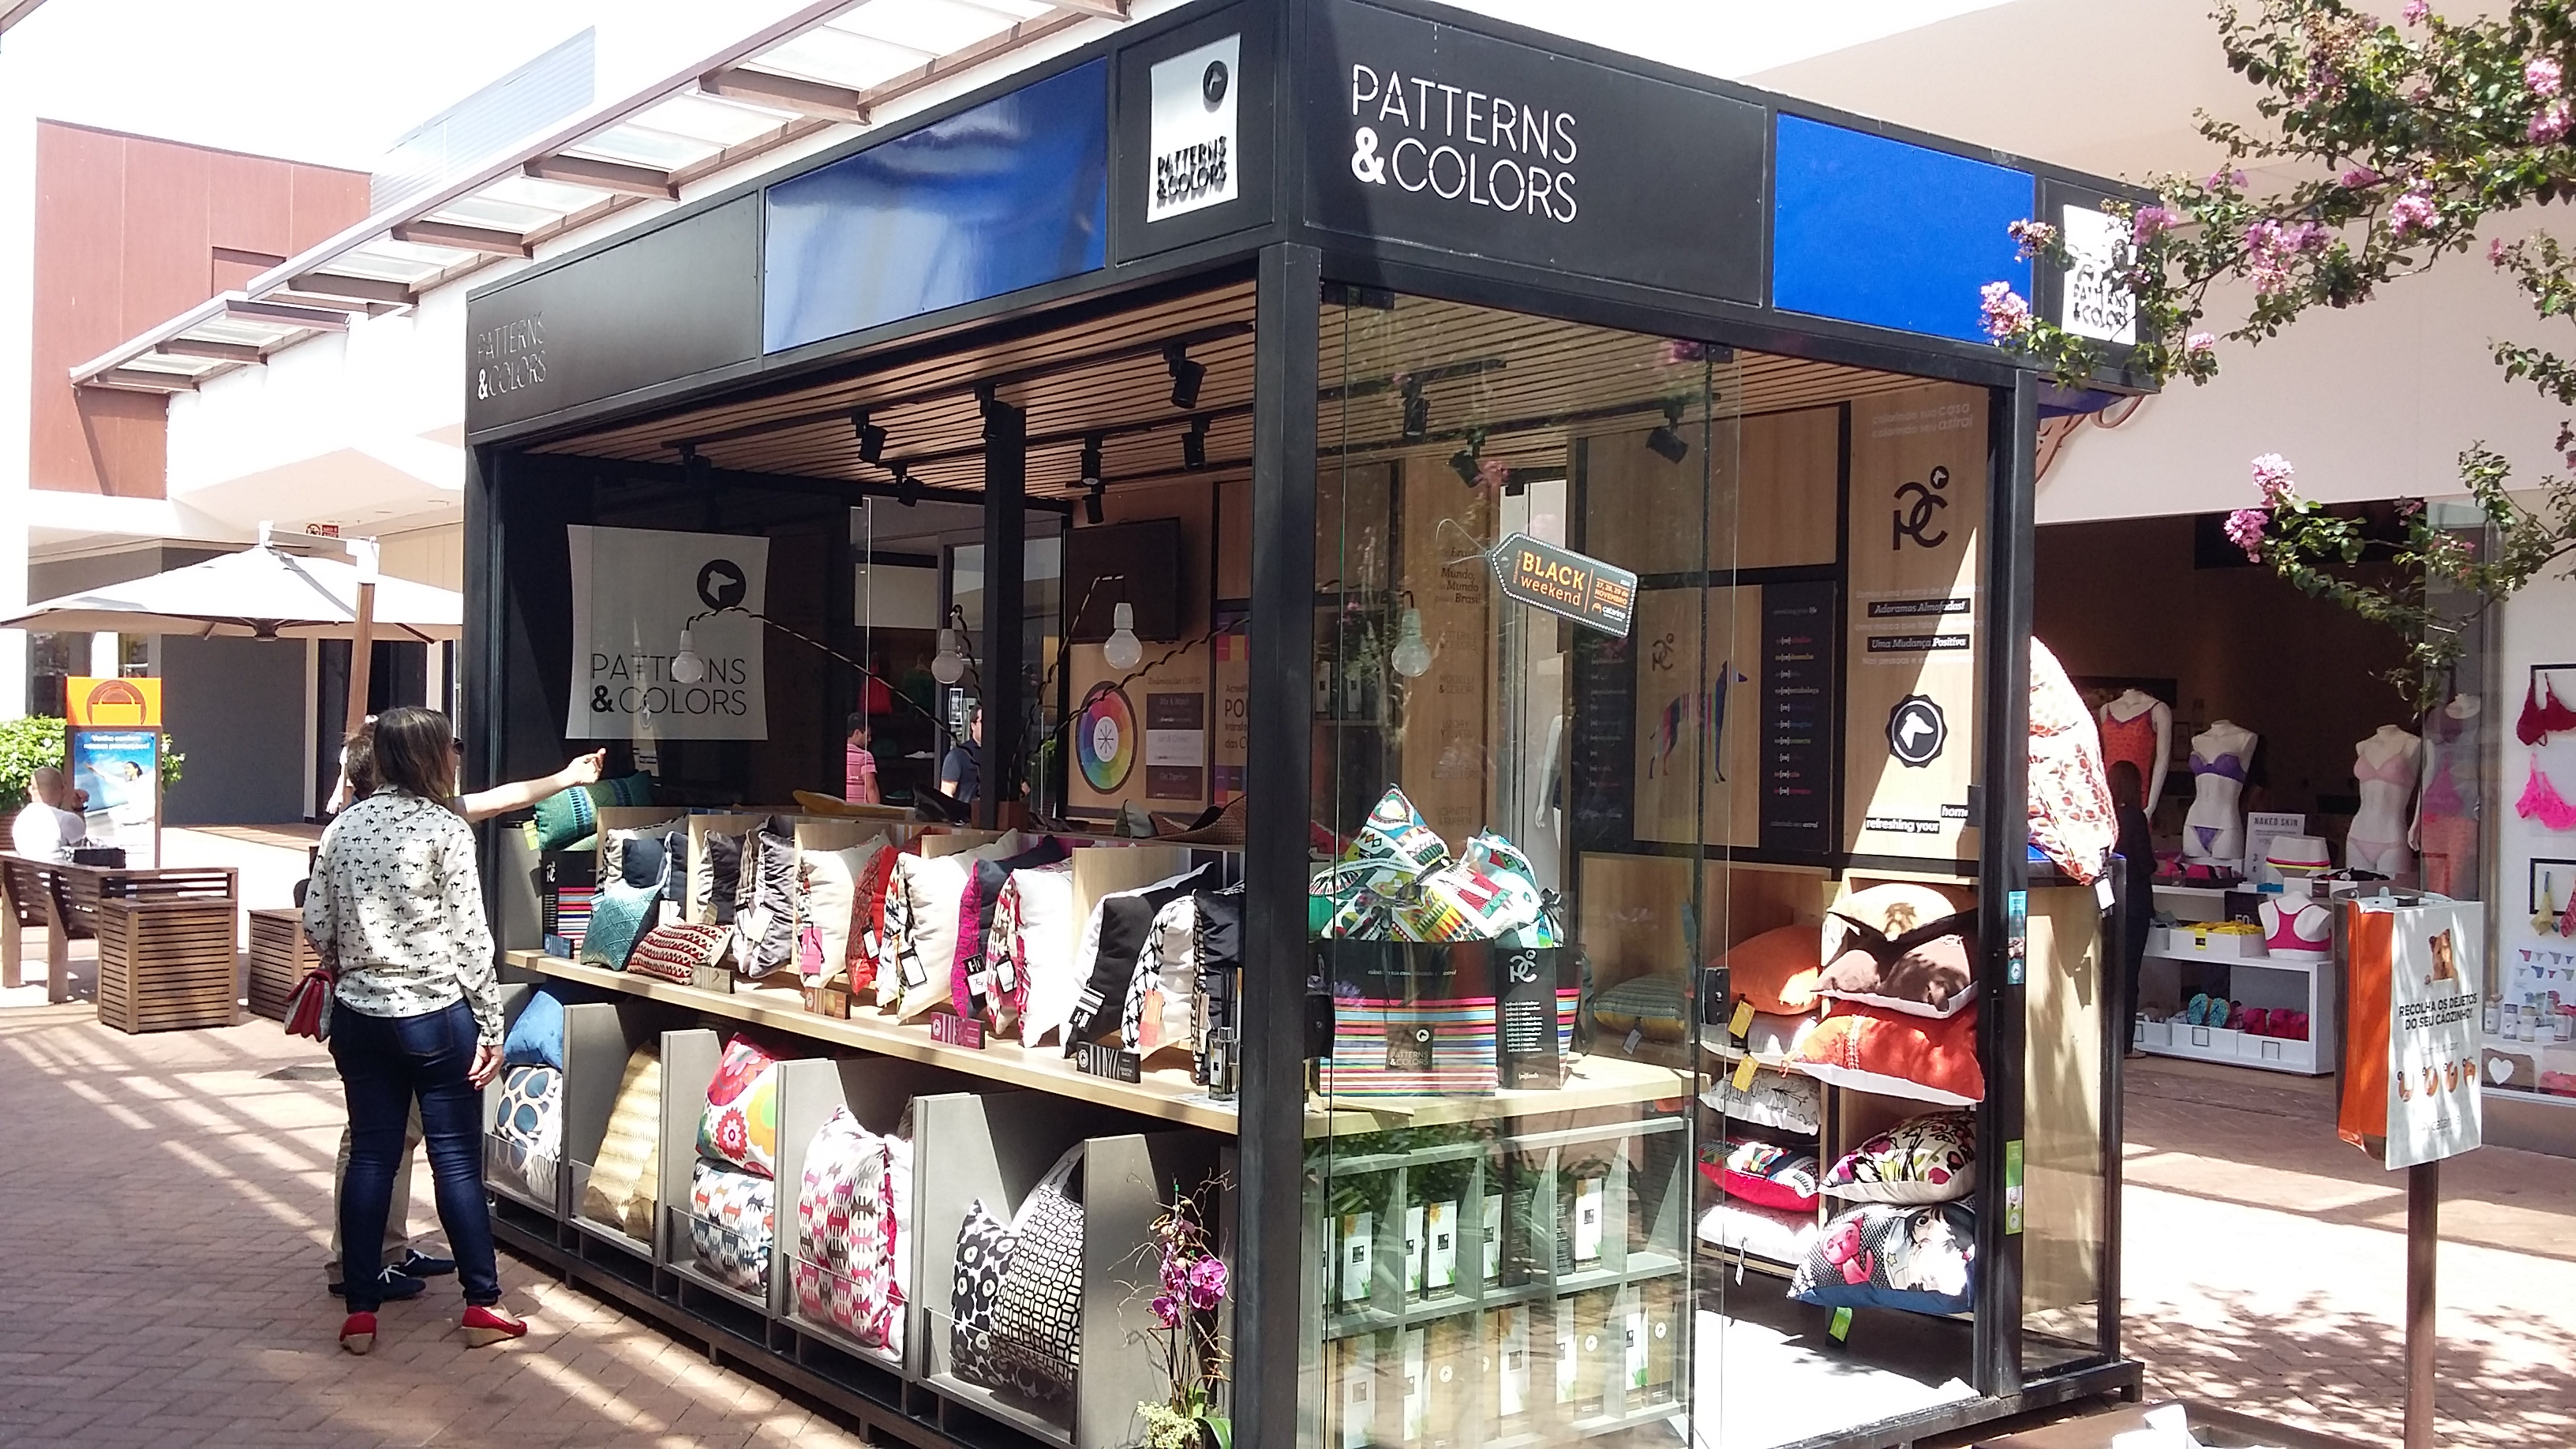 Patterns & Colors inaugura novo quiosque no Rio